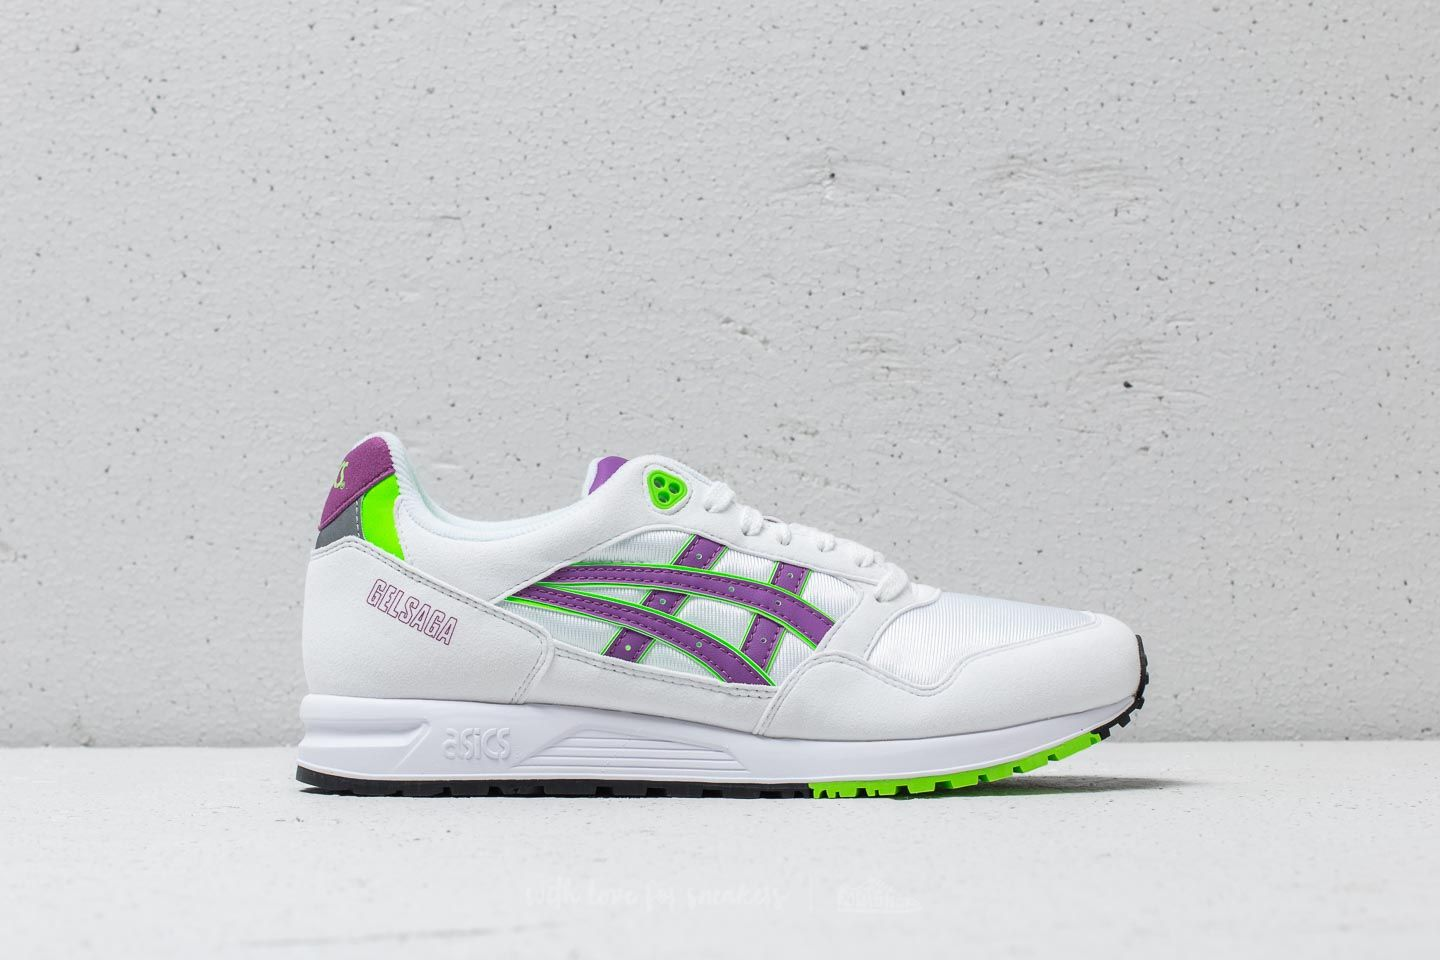 cacfb85740b1 Asics Gelsaga White/ Orchid at a great price 63 € buy at Footshop